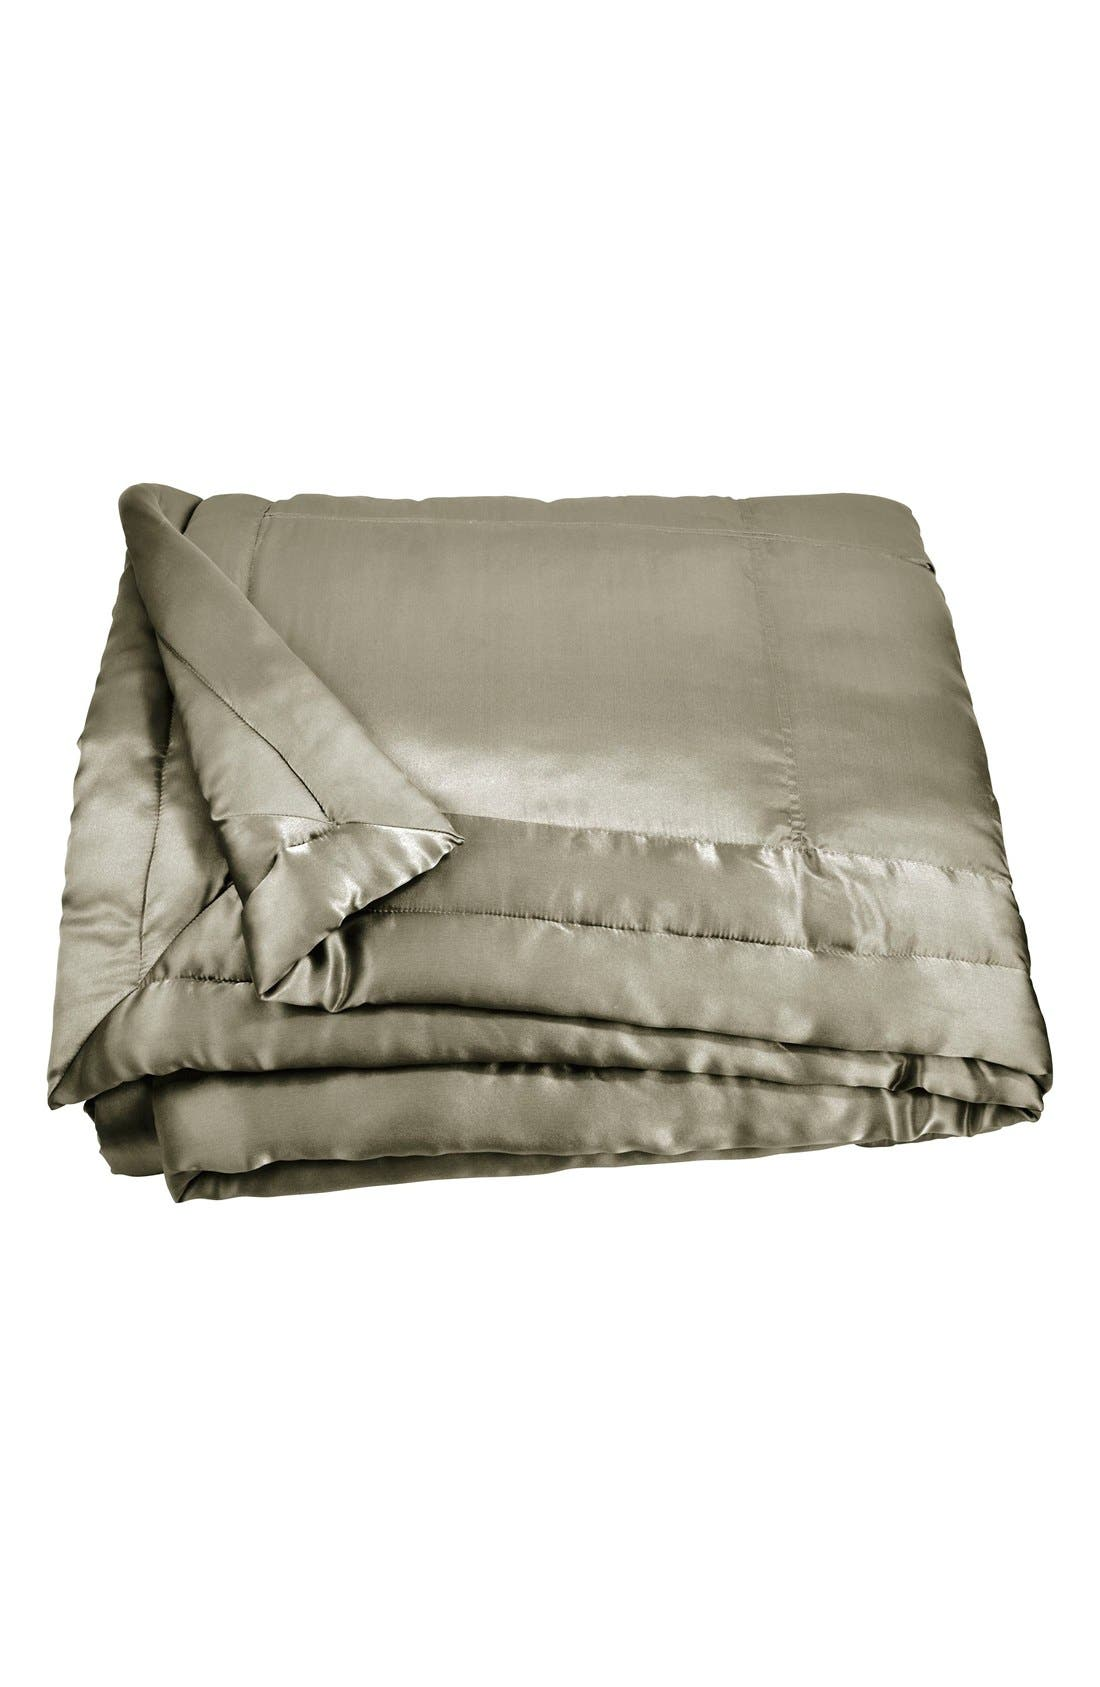 Donna Karan Collection 'Exhale' Silk Charmeuse Quilt,                         Main,                         color, Moss